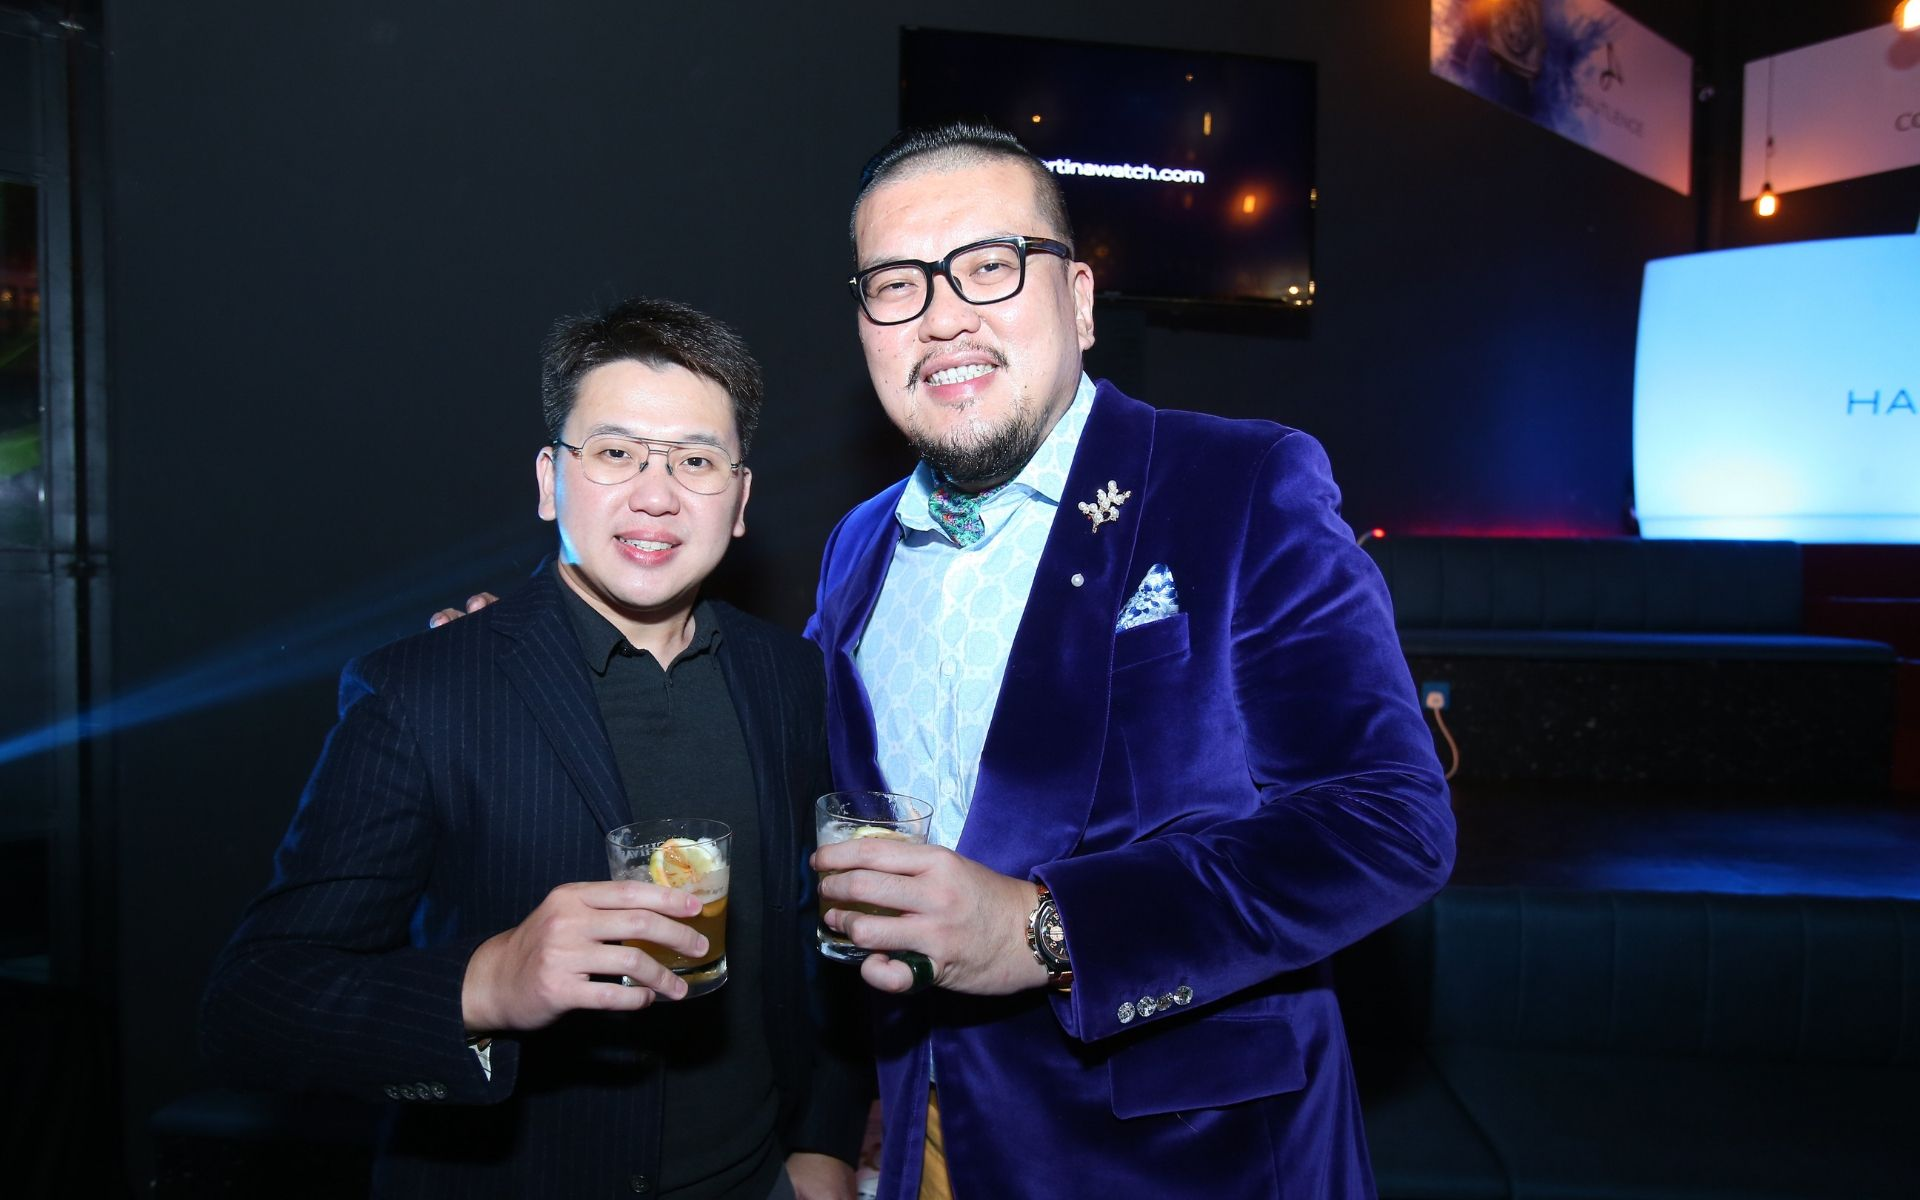 Jacky Lim and James Chow